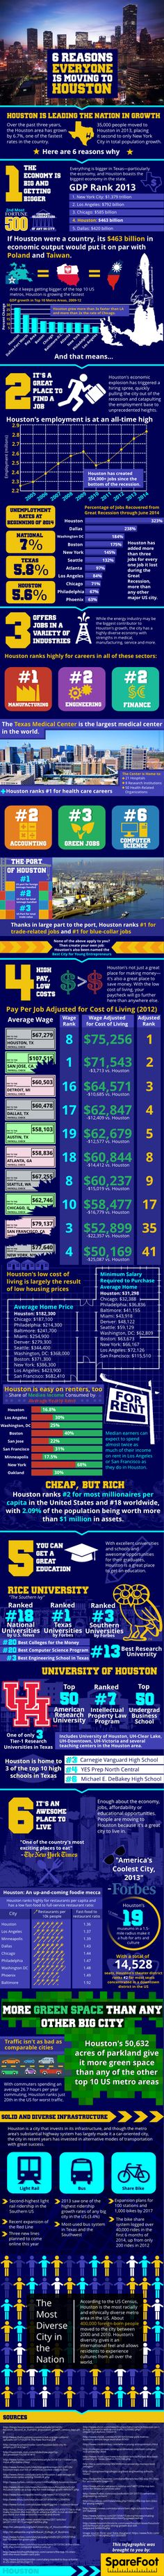 6 Reasons Why Everyone Is Moving To Houston #infographic #Houston #Travel